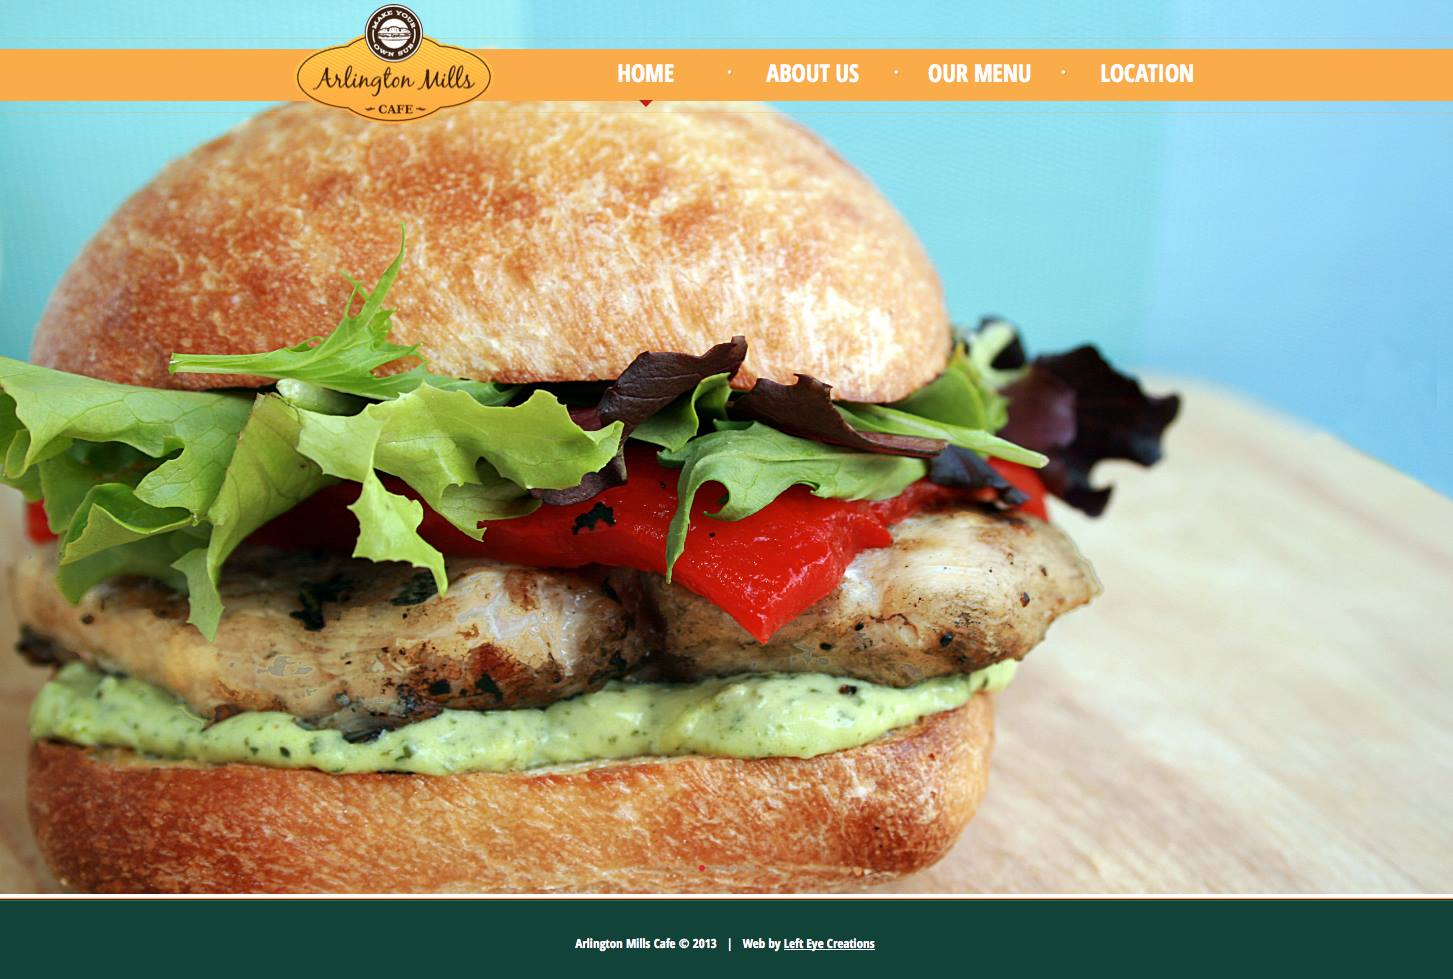 Website-Design-Sandwitch -Shop-Company.jpg